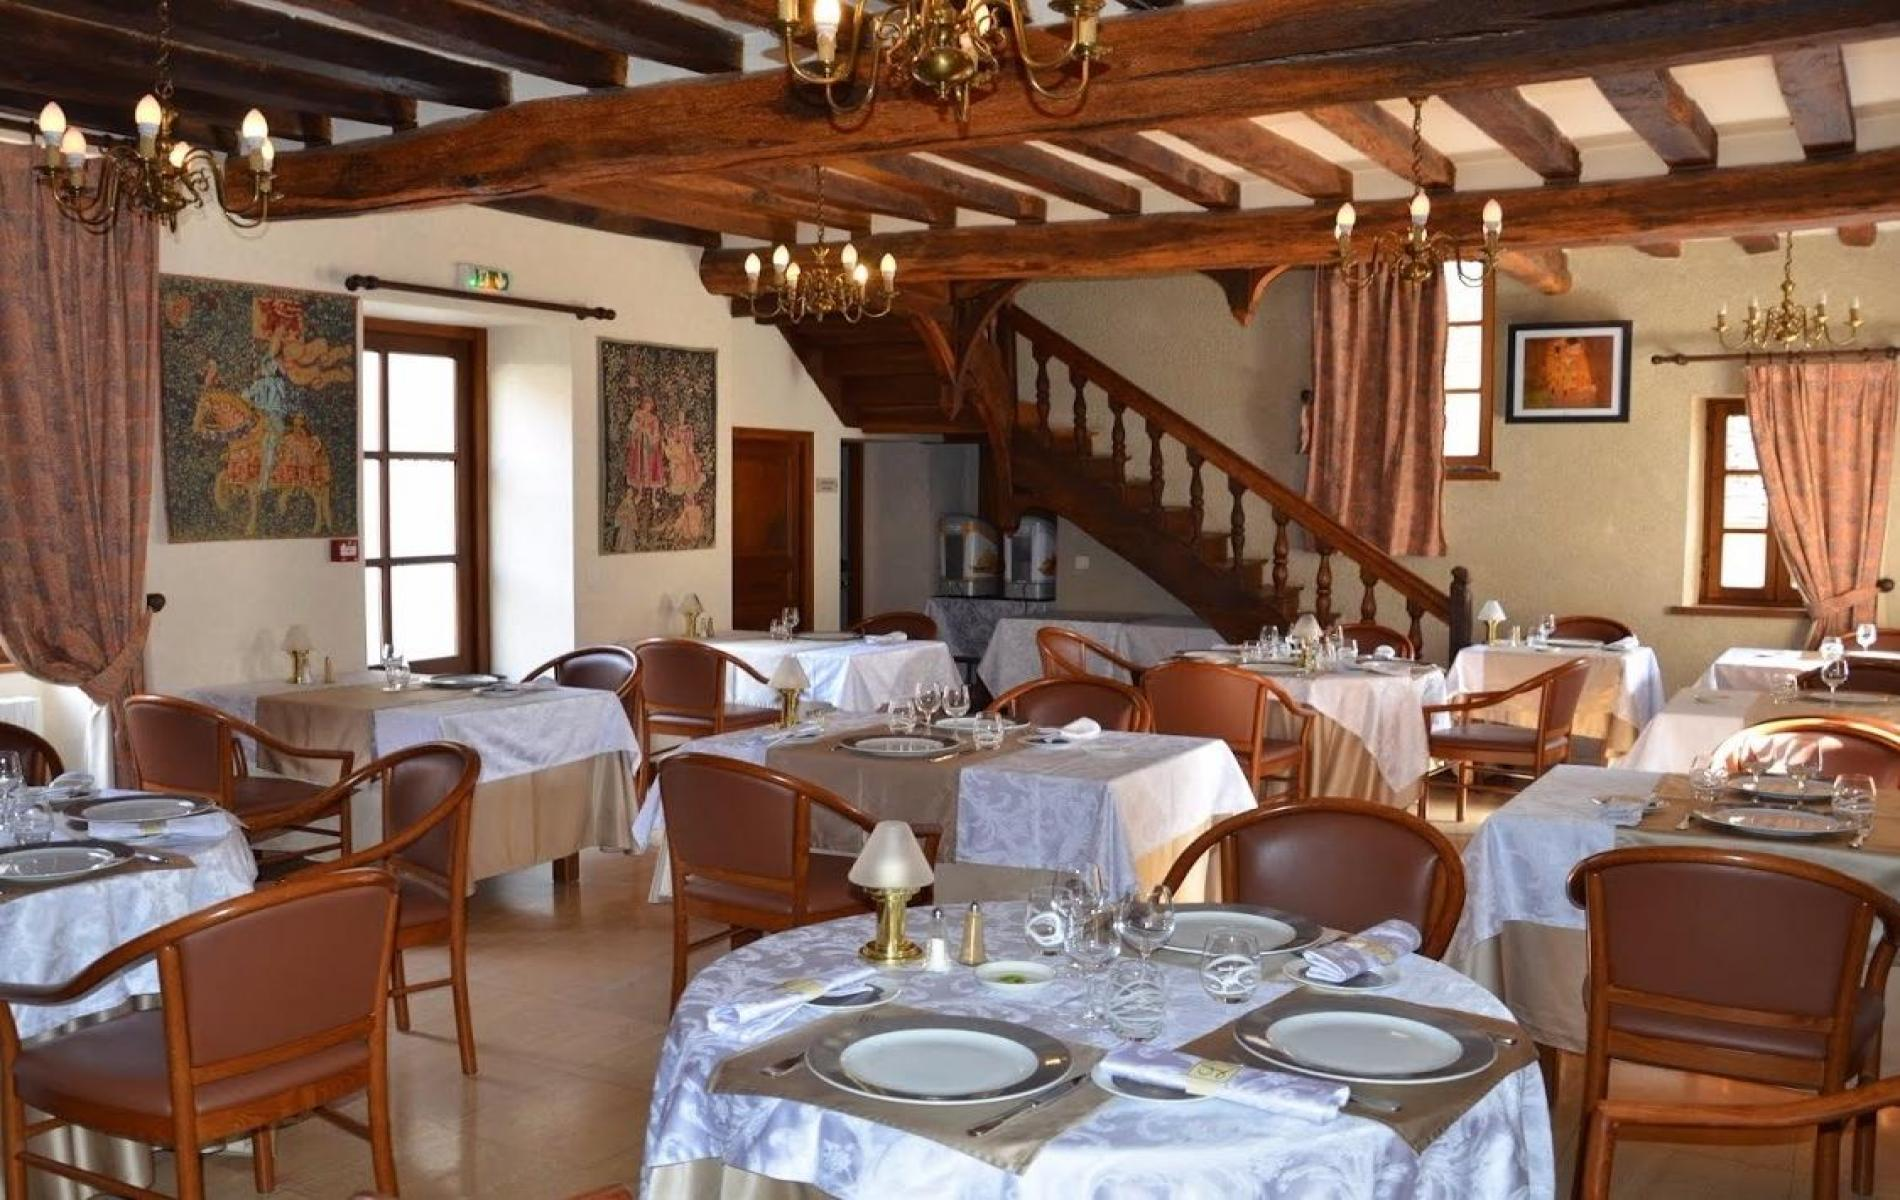 The ***hotel restaurant, Le Relais Saint-Vincent welcomes tourism groups and your reception  guests.